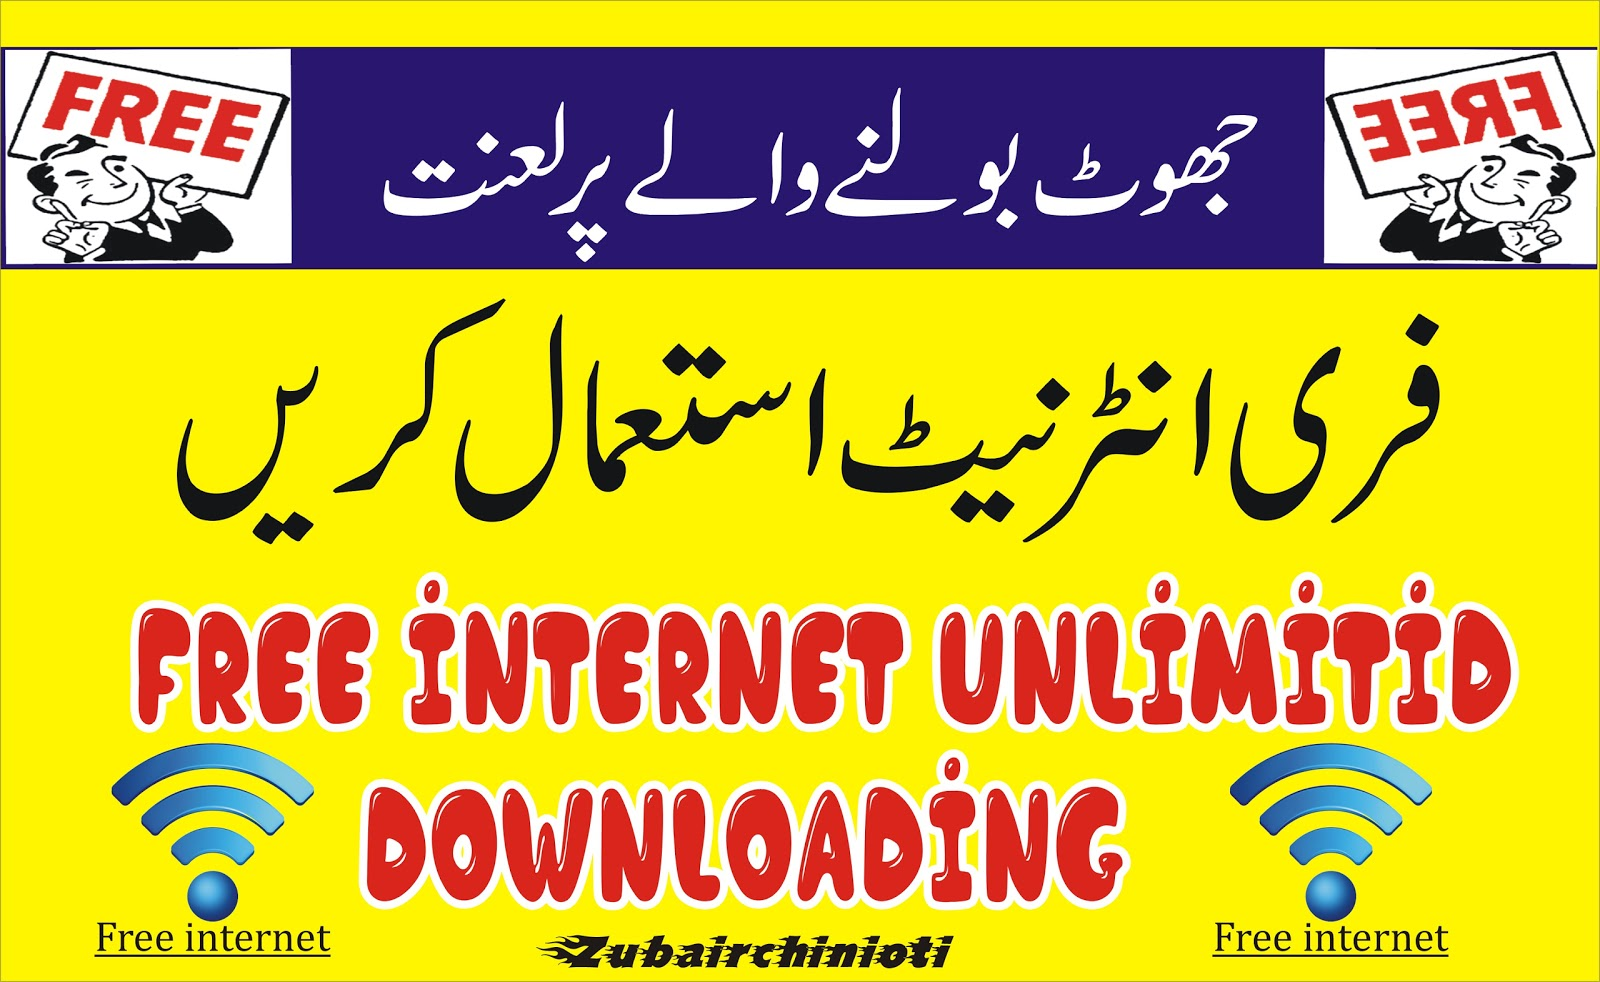 how to use free internet 3G / 4G free unlimitid downloading - Zubair